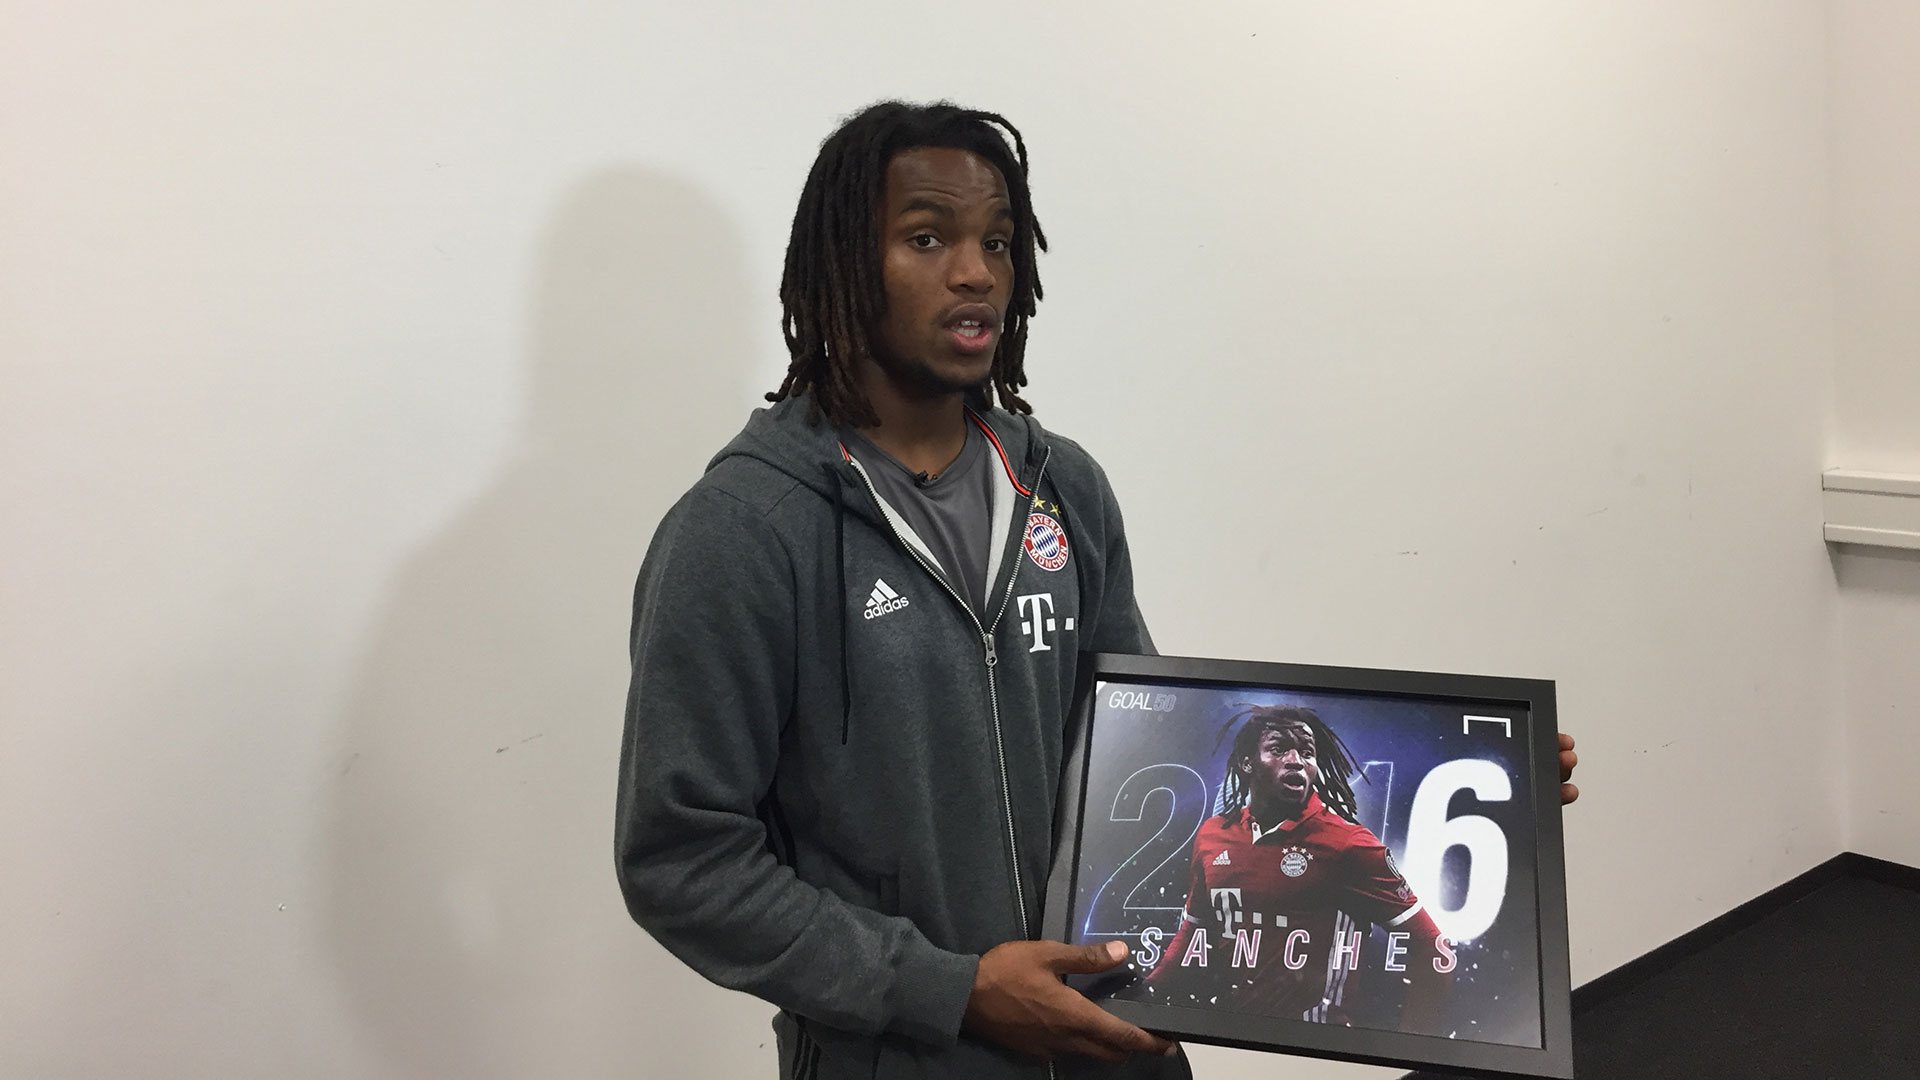 Renato Sanches Goal 50